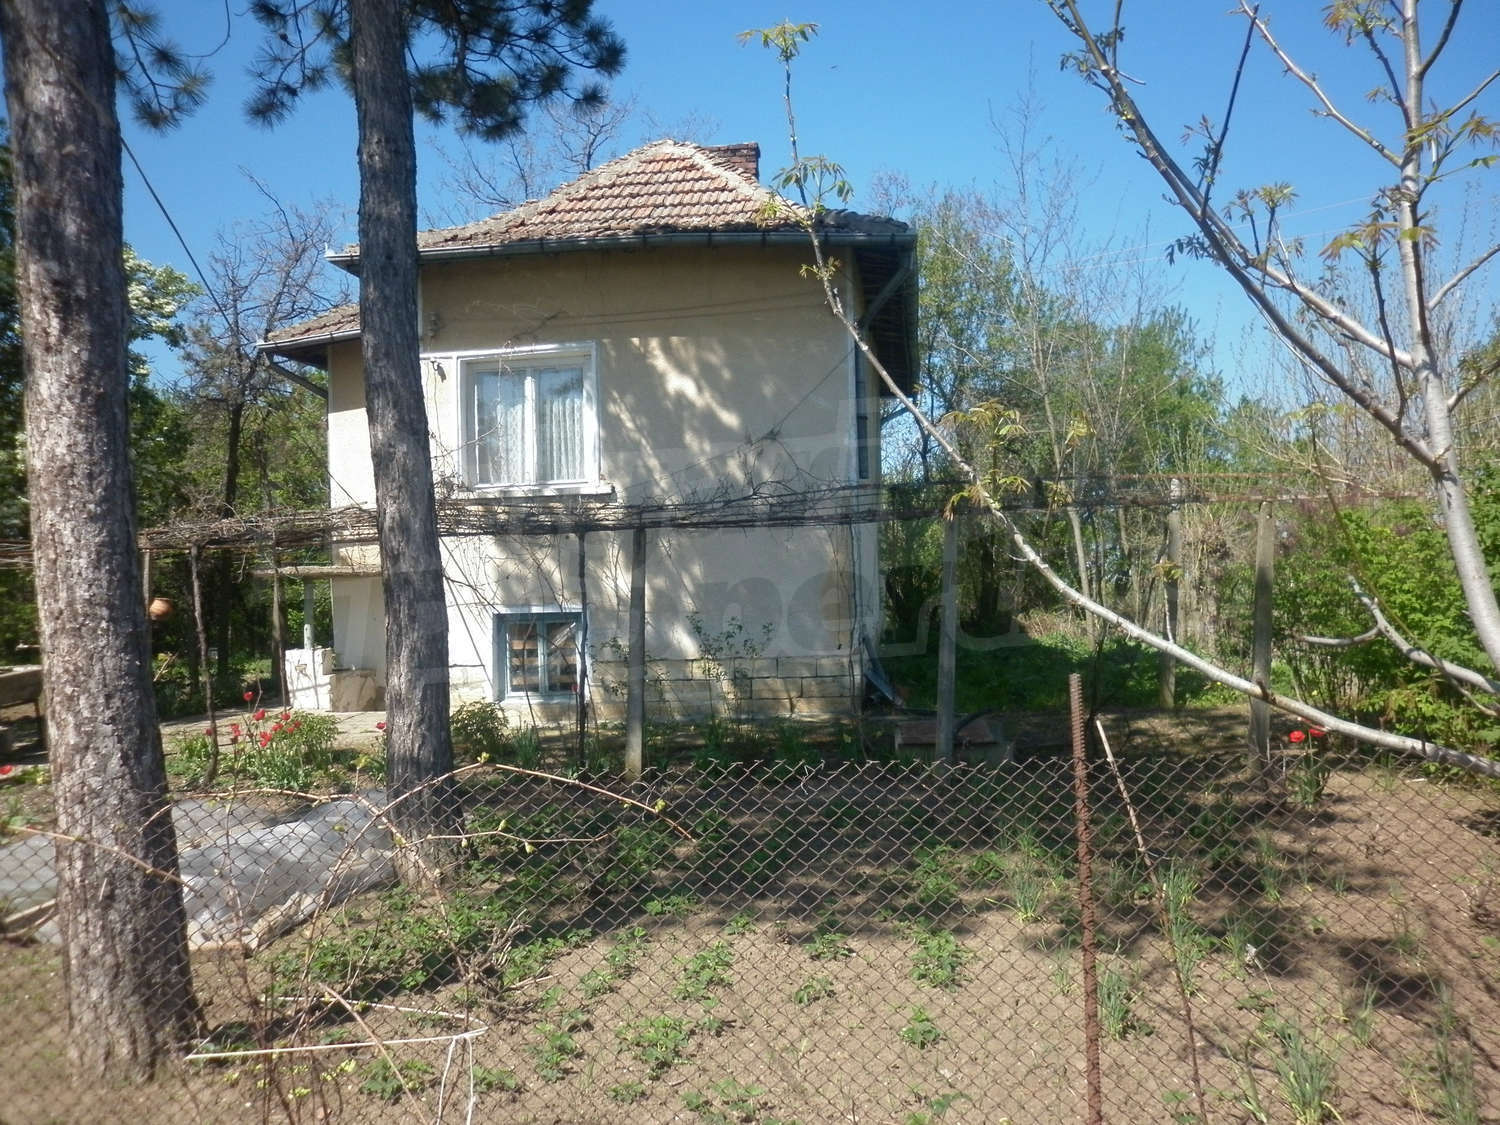 House for sale near vratsa bulgaria nice house with big for Big nice houses for sale